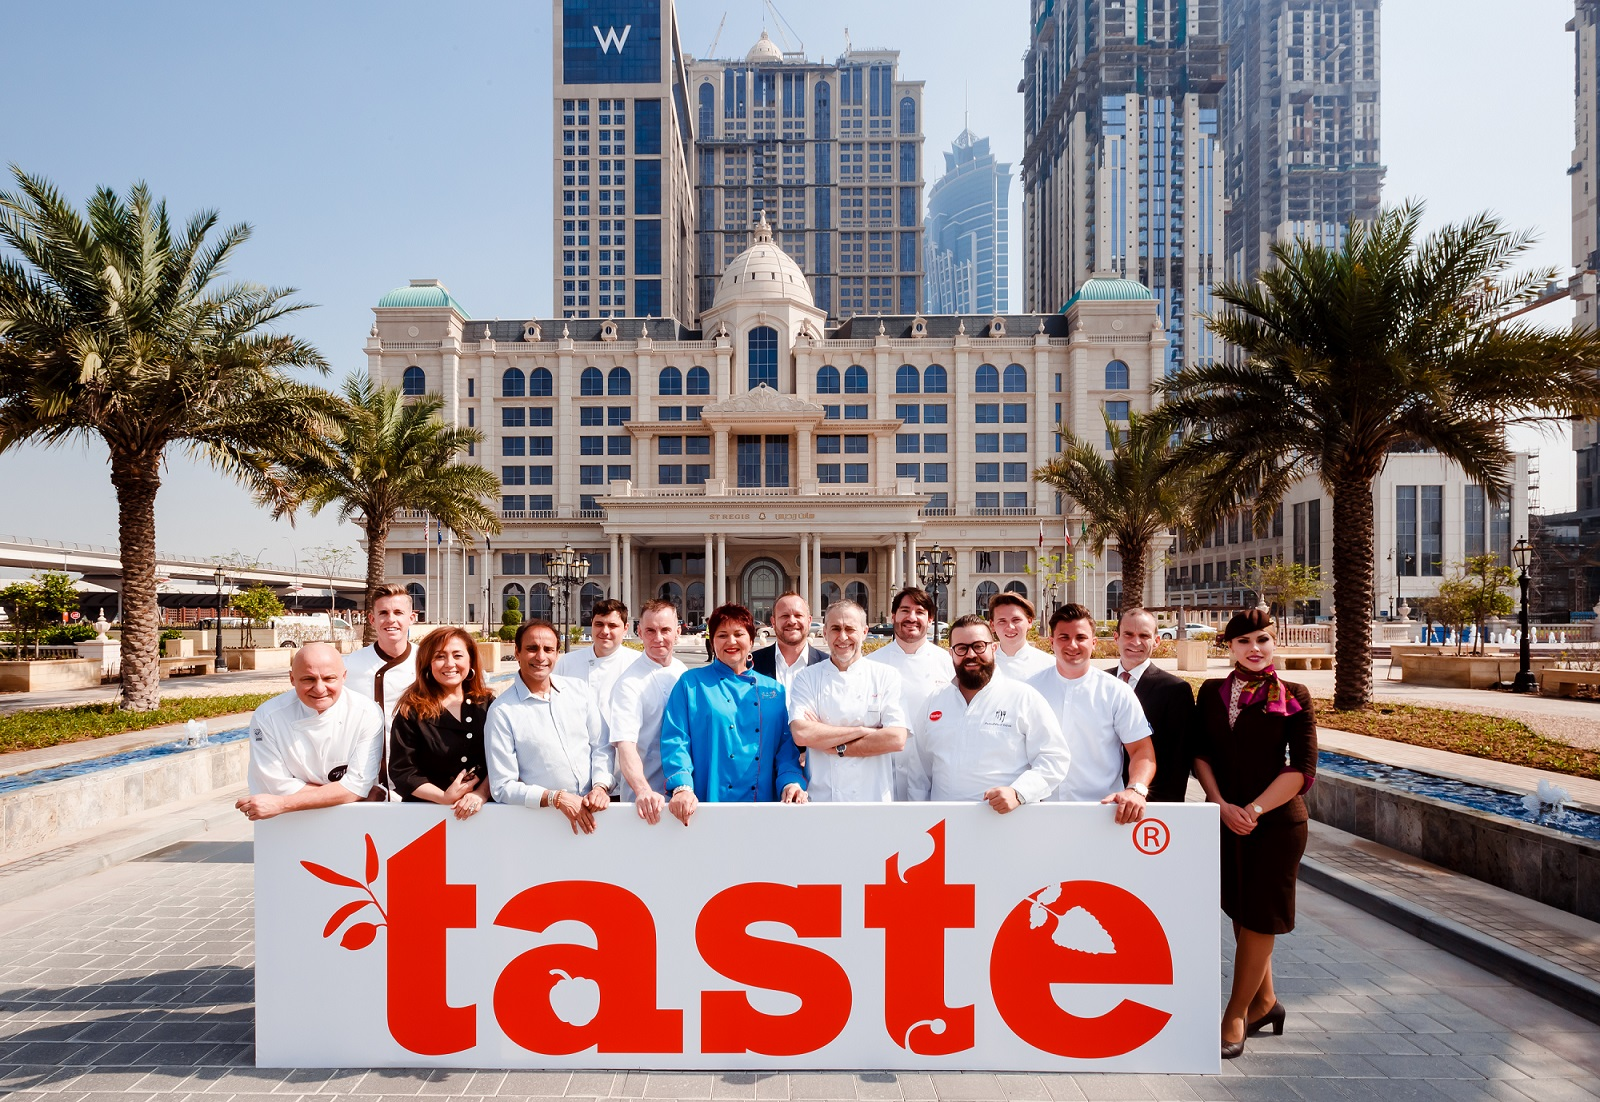 Taste of Dubai on Dec 9th – 12th at Dubai Media City Amphitheatre